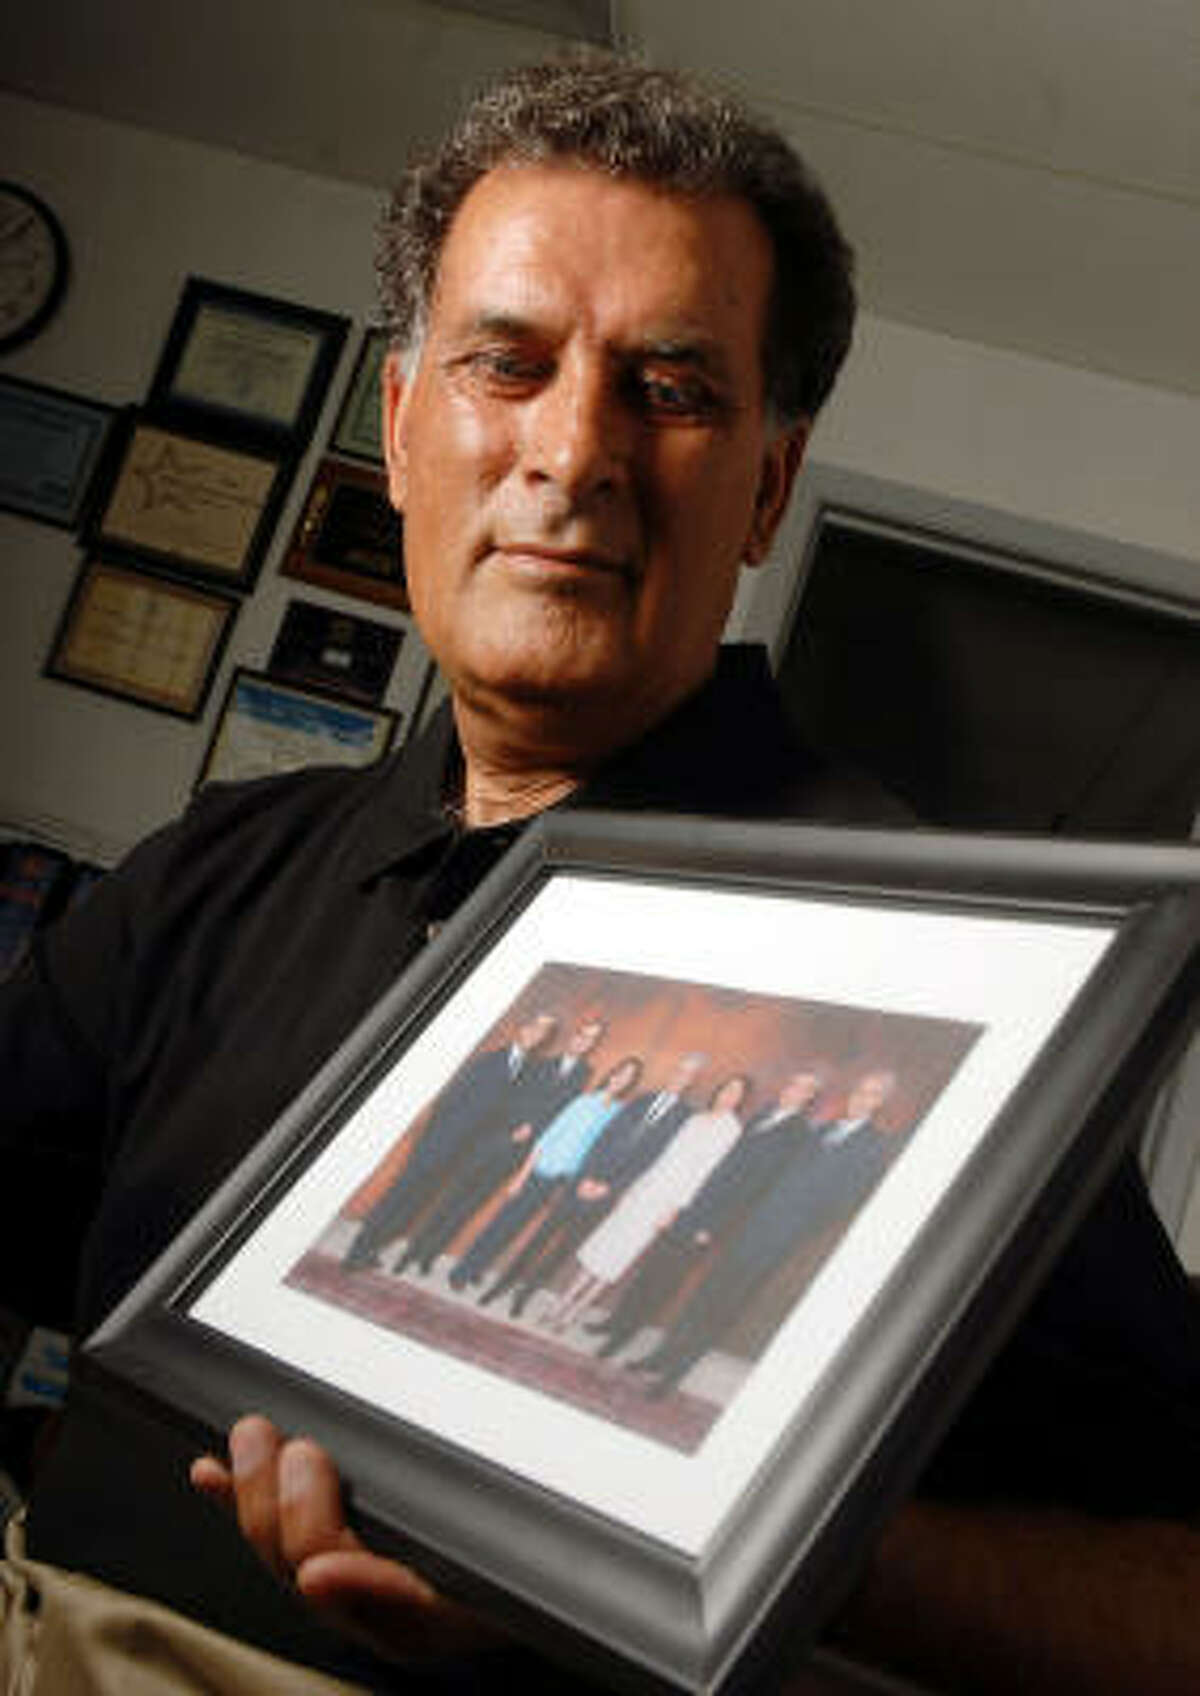 Kamal Khanjani's brother Jamaloddin and six other Baha'i members, seen in the photo he's holding, on Saturday will go on trial for their lives in Iran.